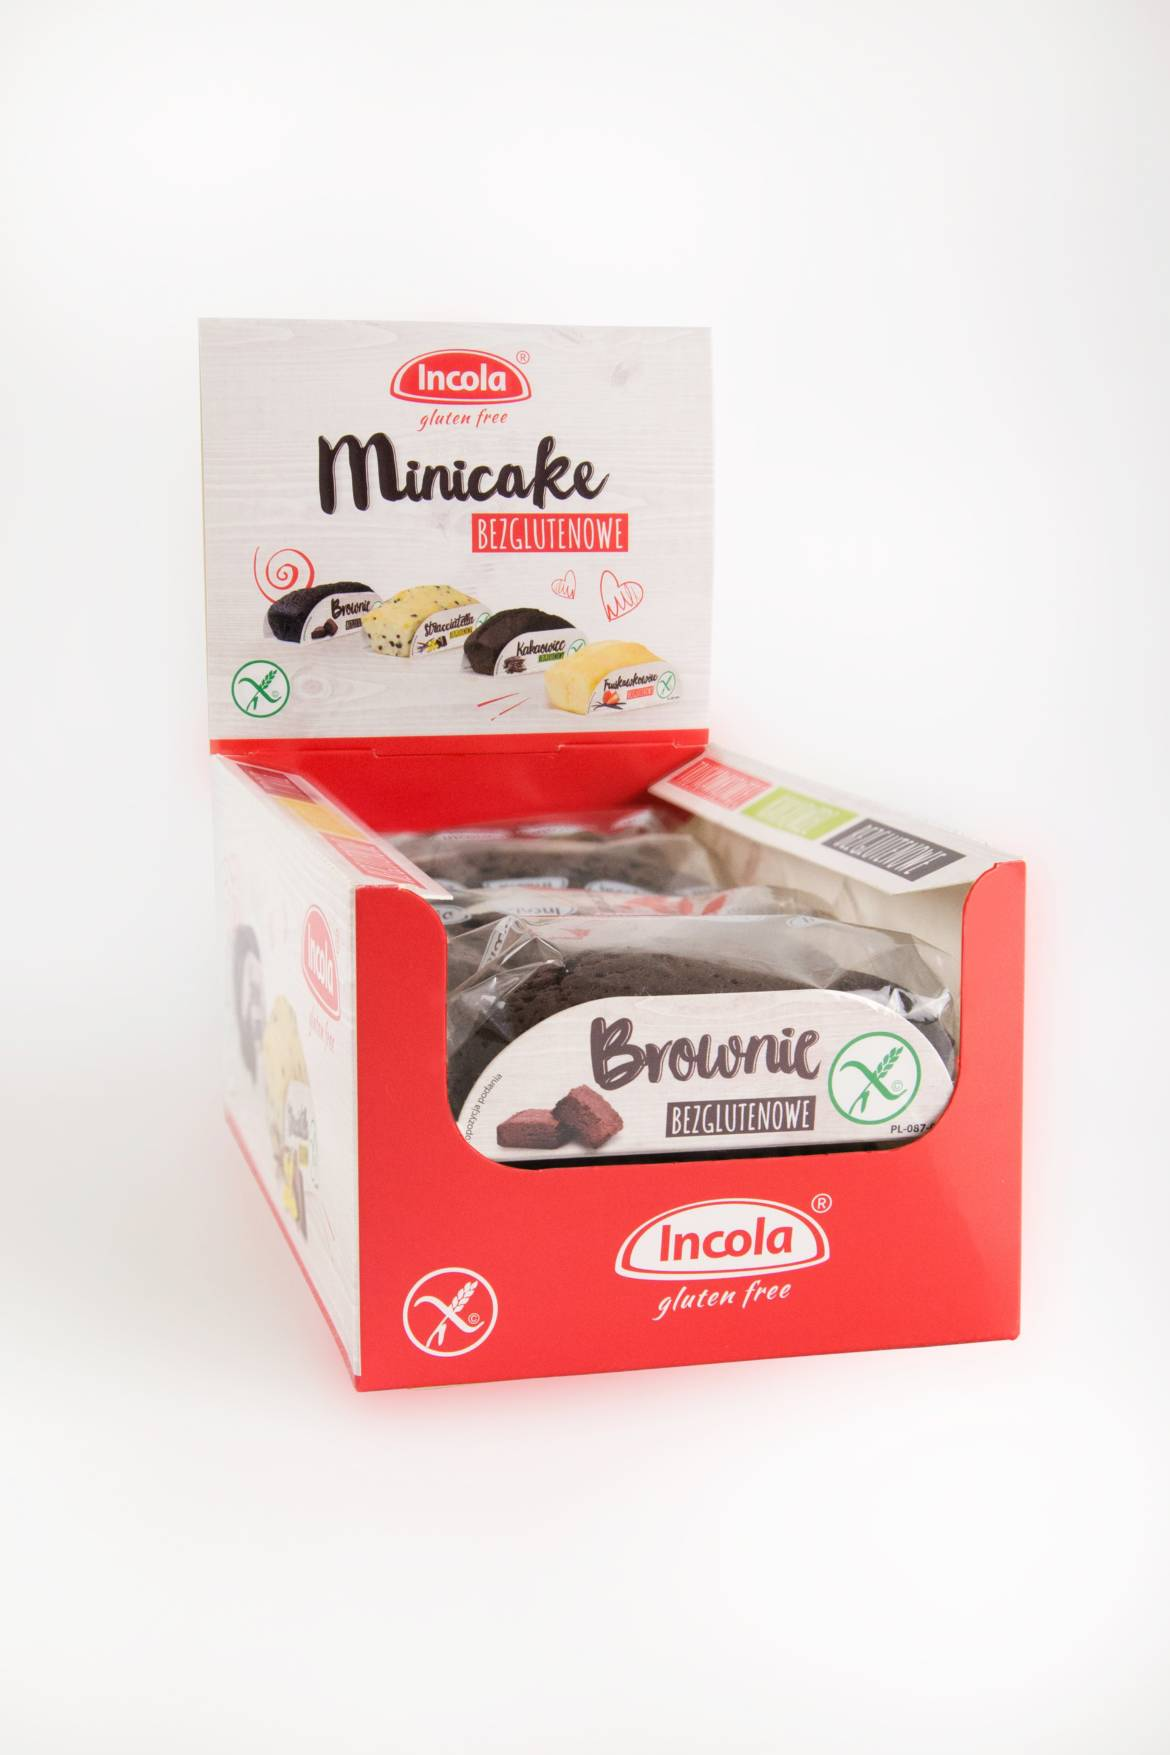 Packshot-display-brownie.jpg